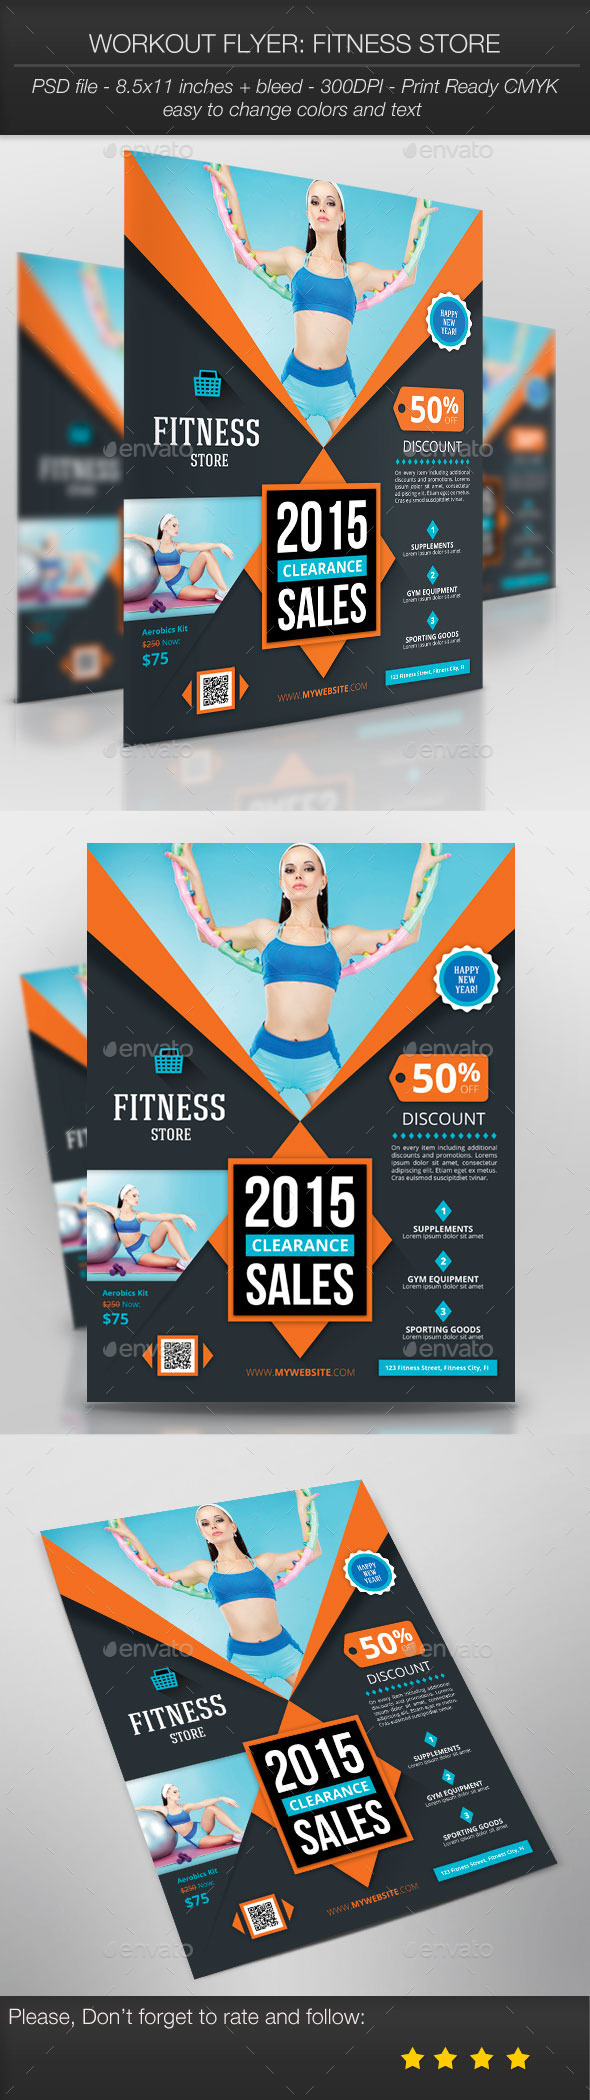 Workout Flyer: Fitness Store - Sports Events